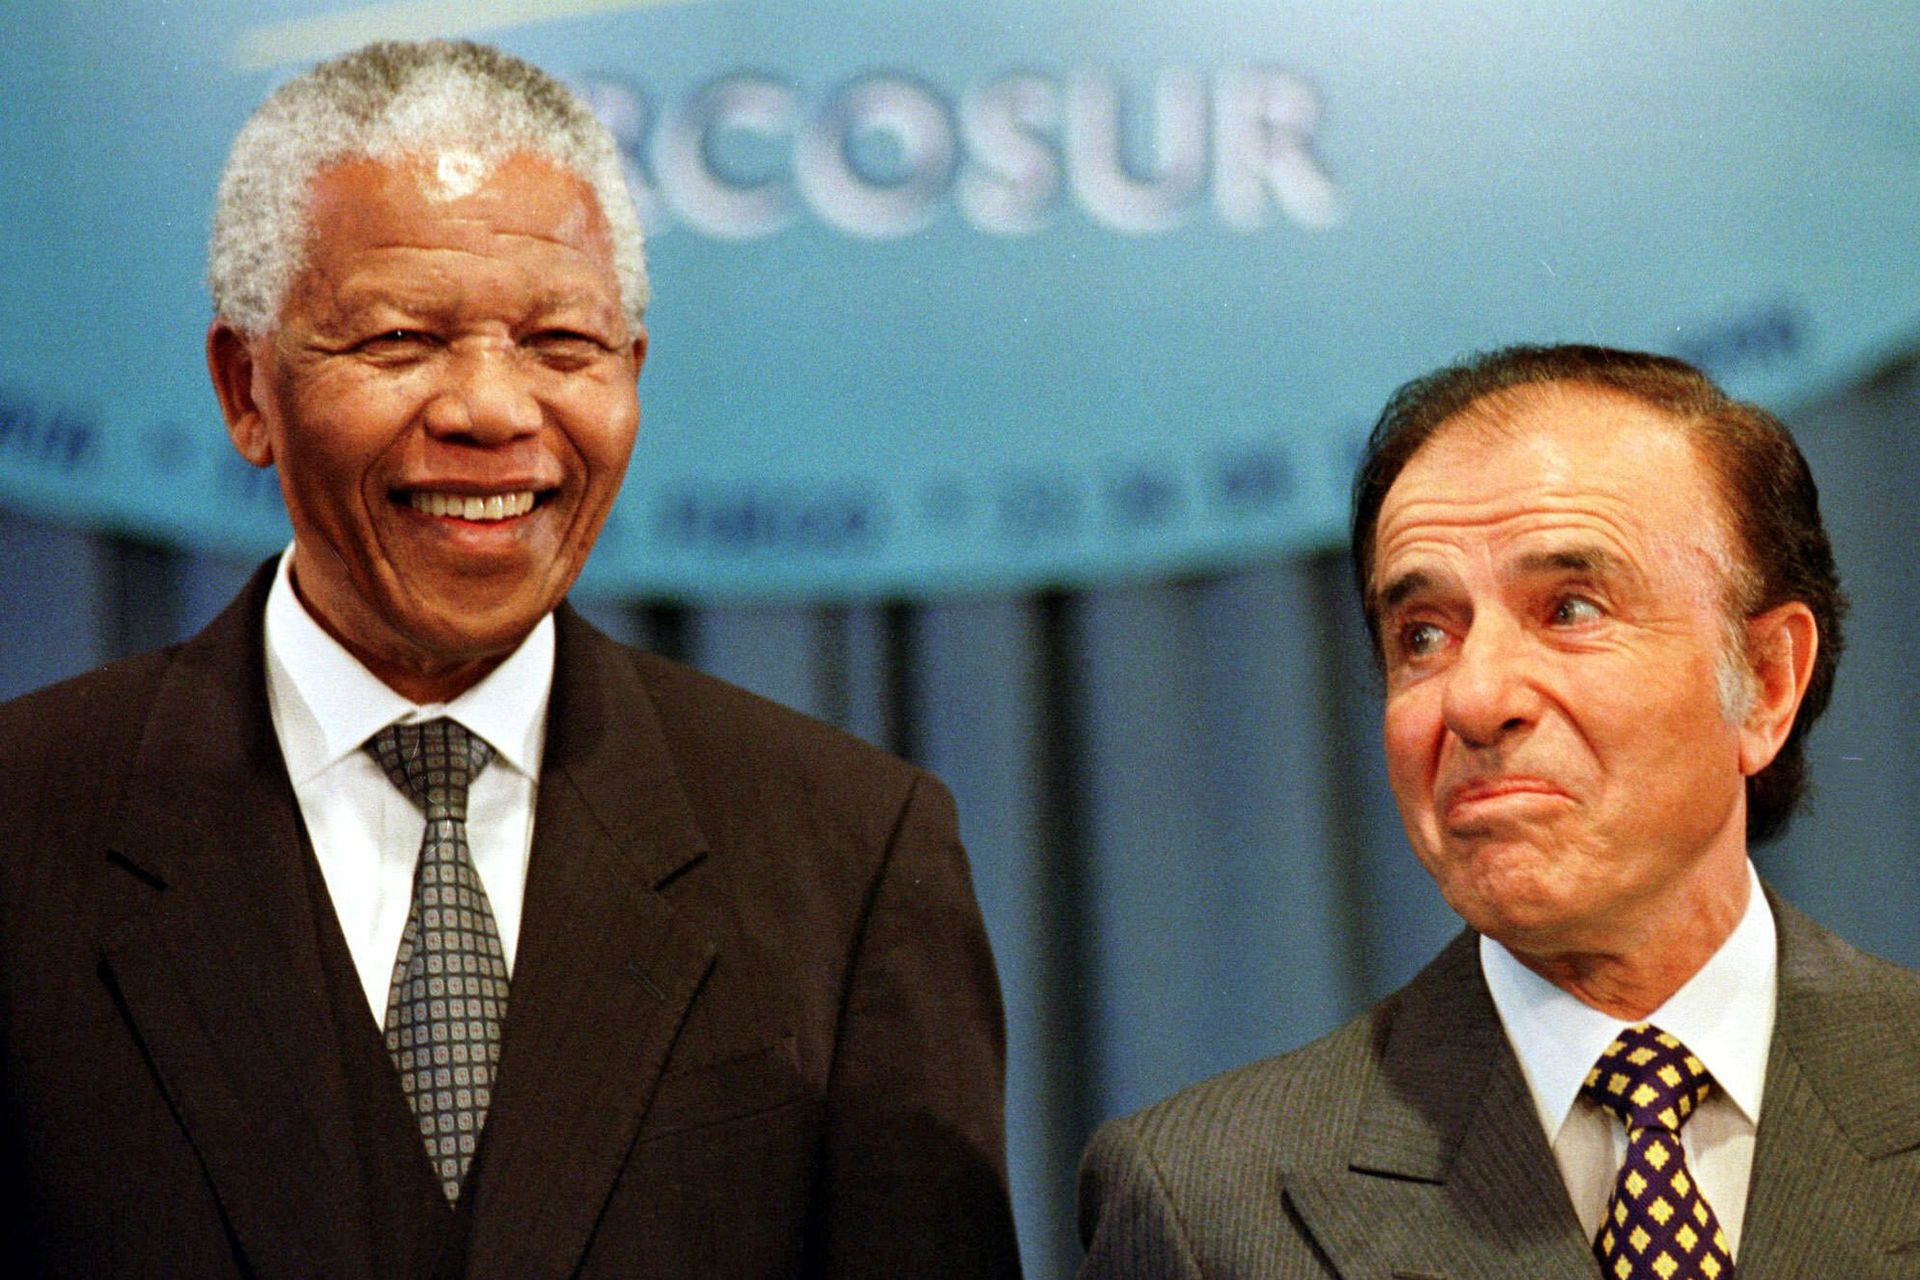 Nelson Mandela with Carlos Menem in 1998, during the Mercosur Summit in Ushuaia